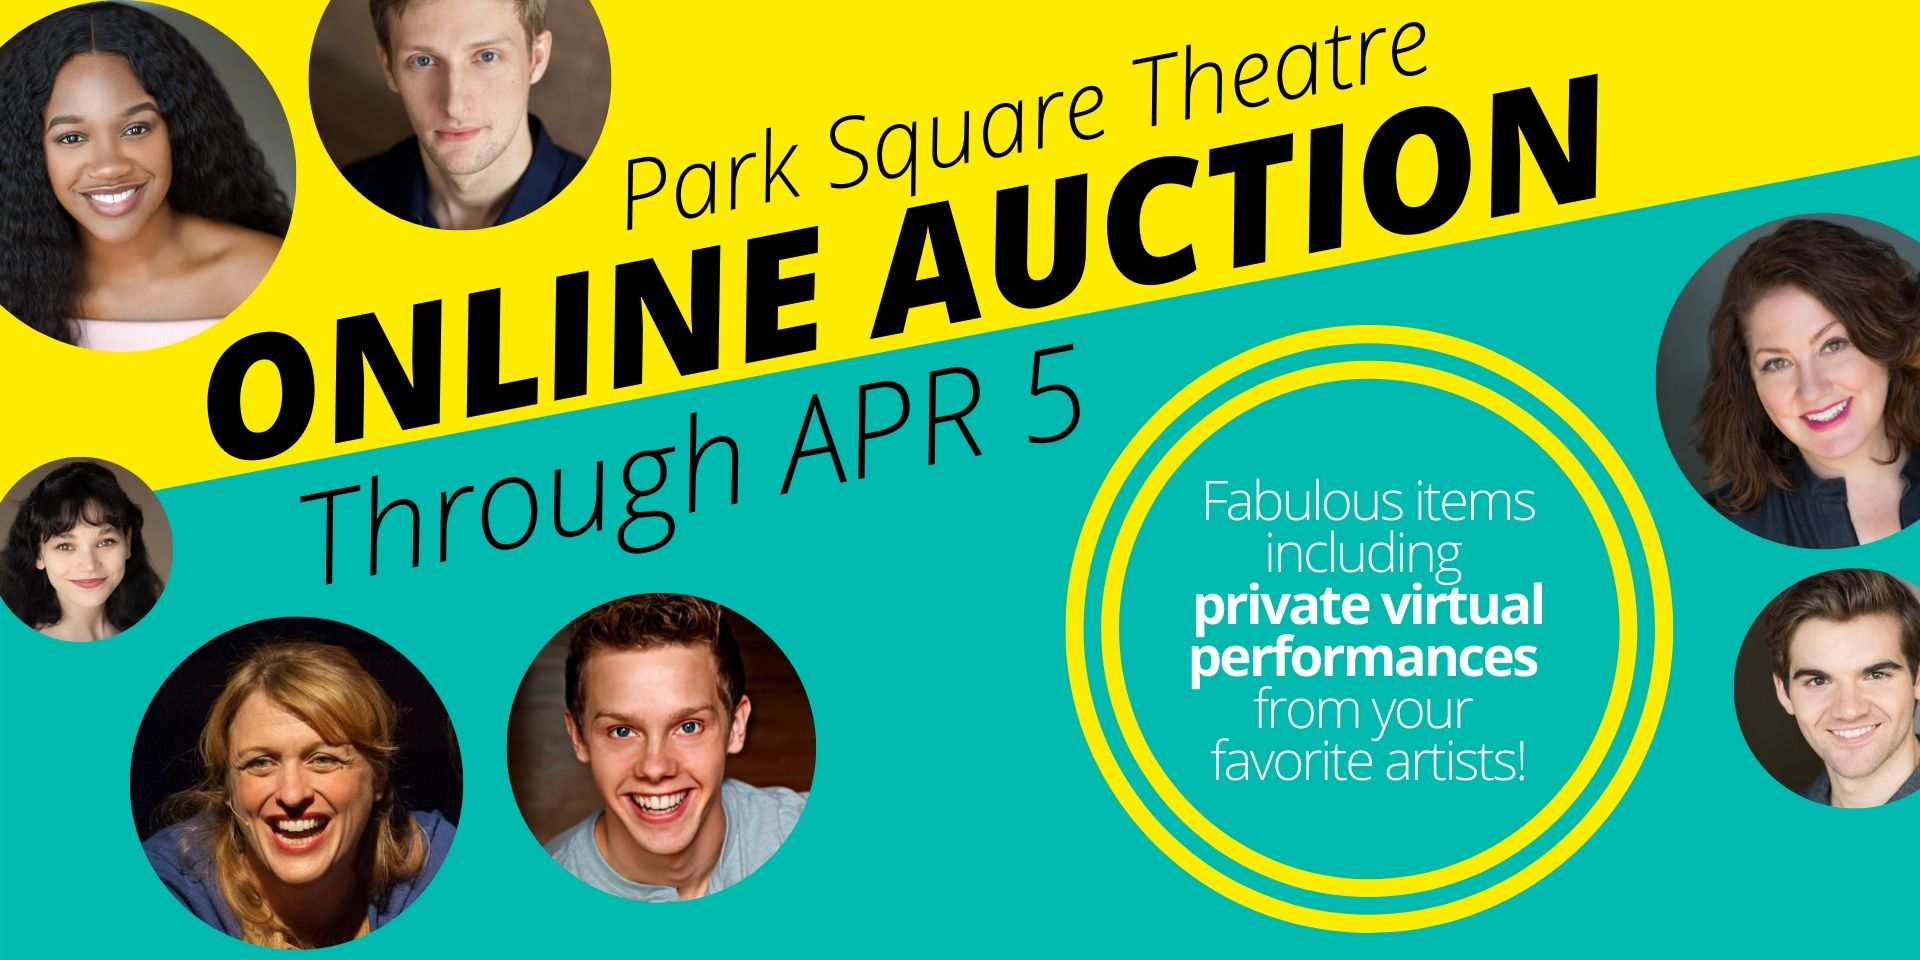 Online Auction text on yellow and turquoise background with images of actors in circles